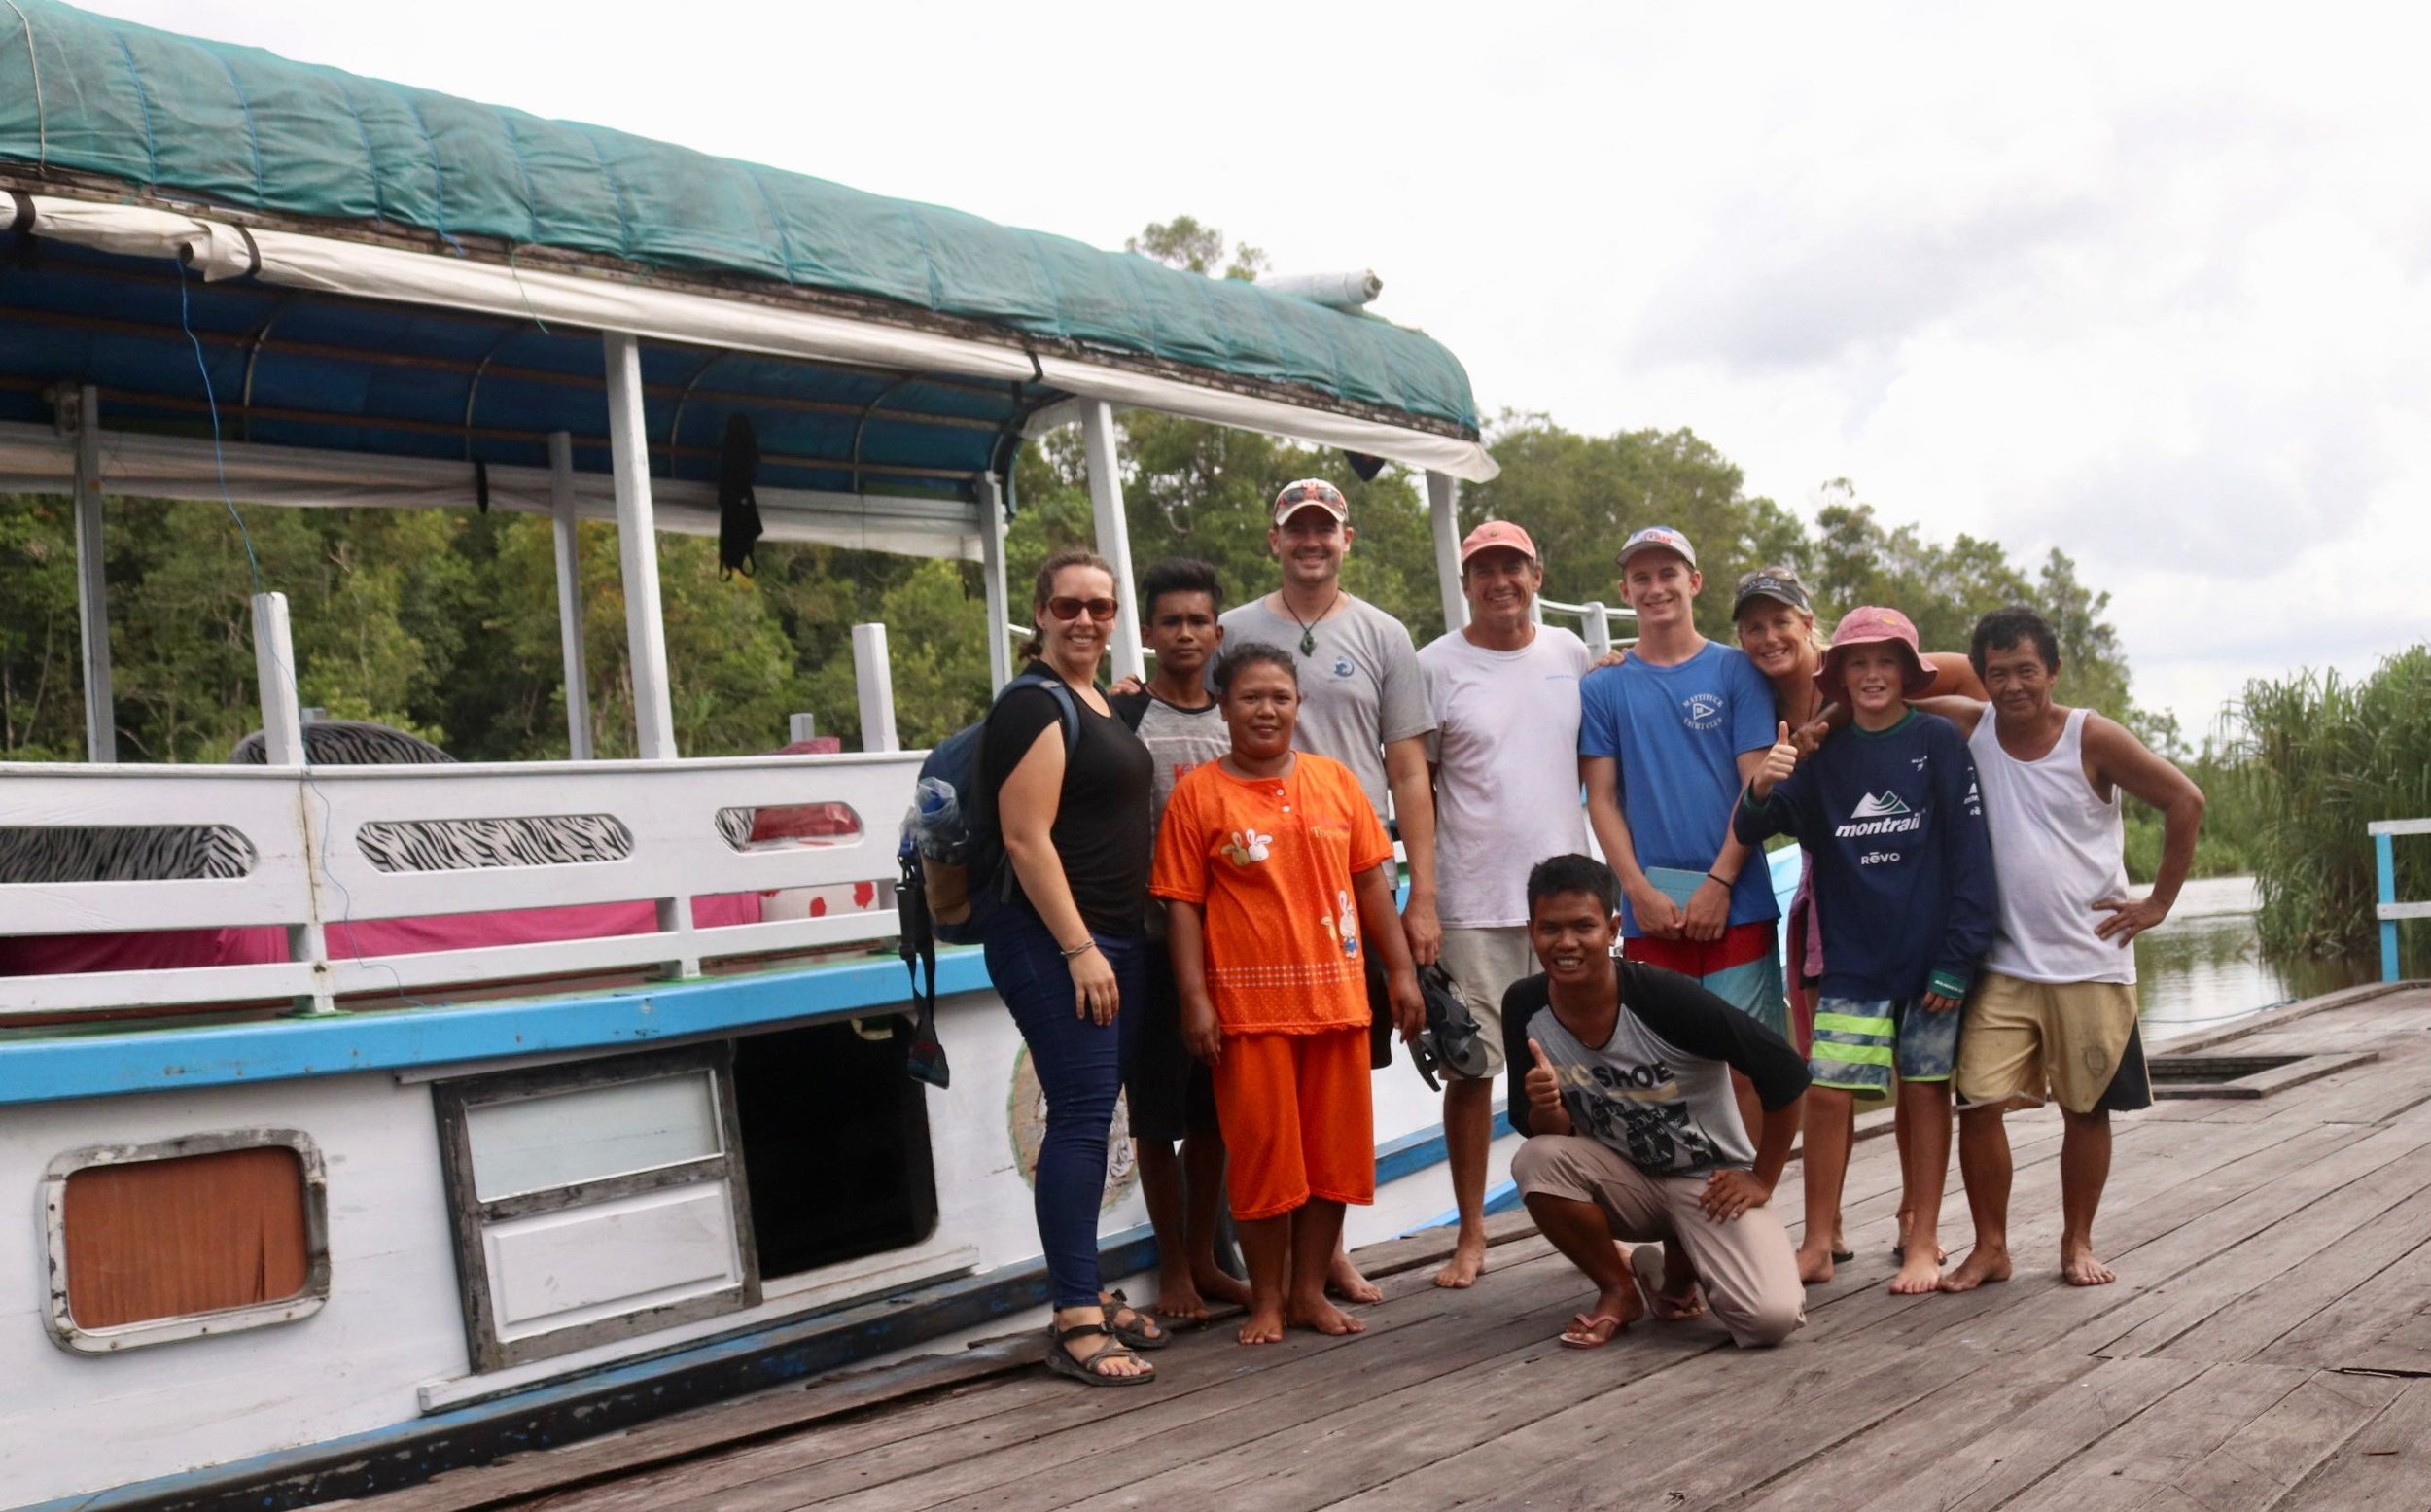 Our boat and crew for three days!